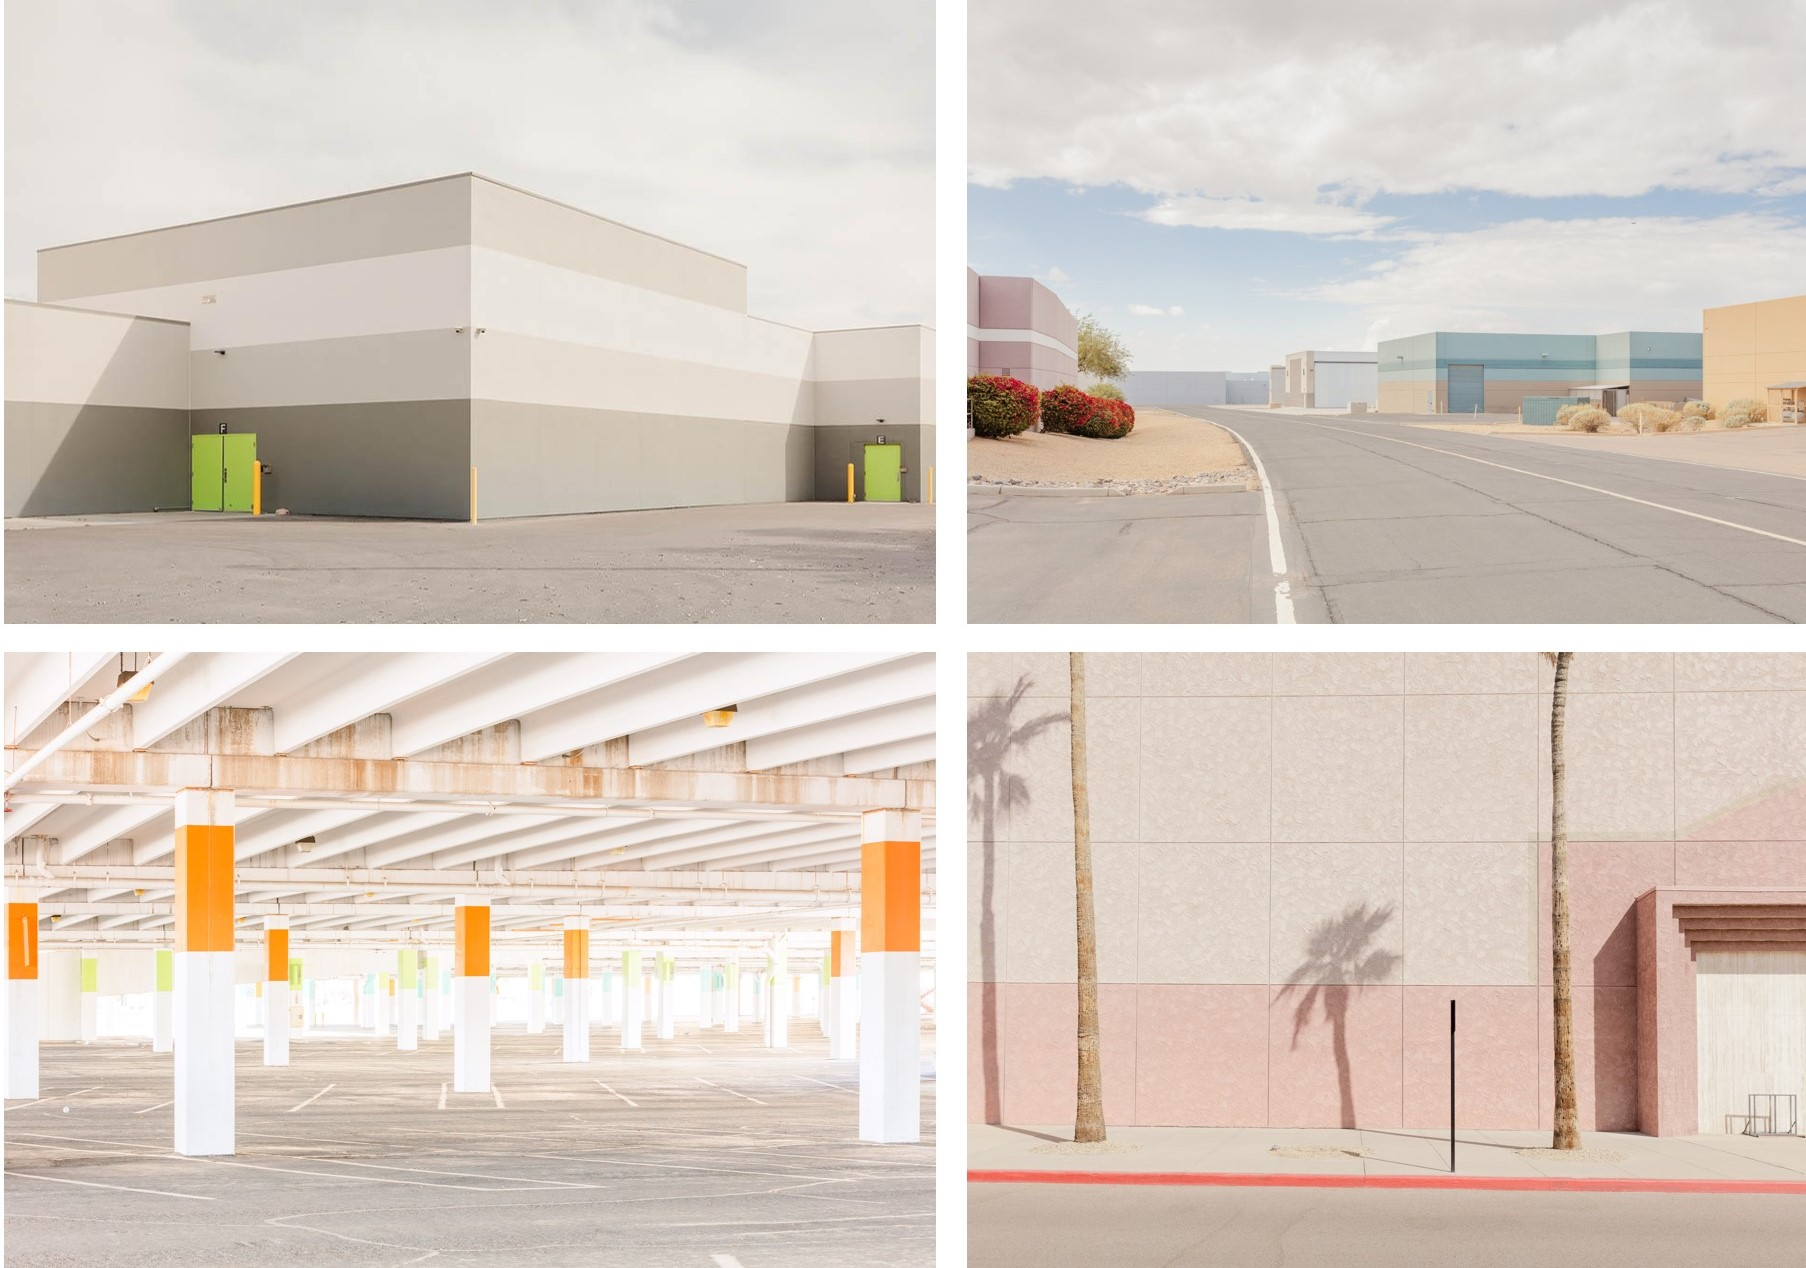 DISEMBODIED BEAUTY These photographs by Jesse Reiser of semi abandoned places, dead malls and distribution centers in the desert are beautiful images of desolate sometimes degraded places.